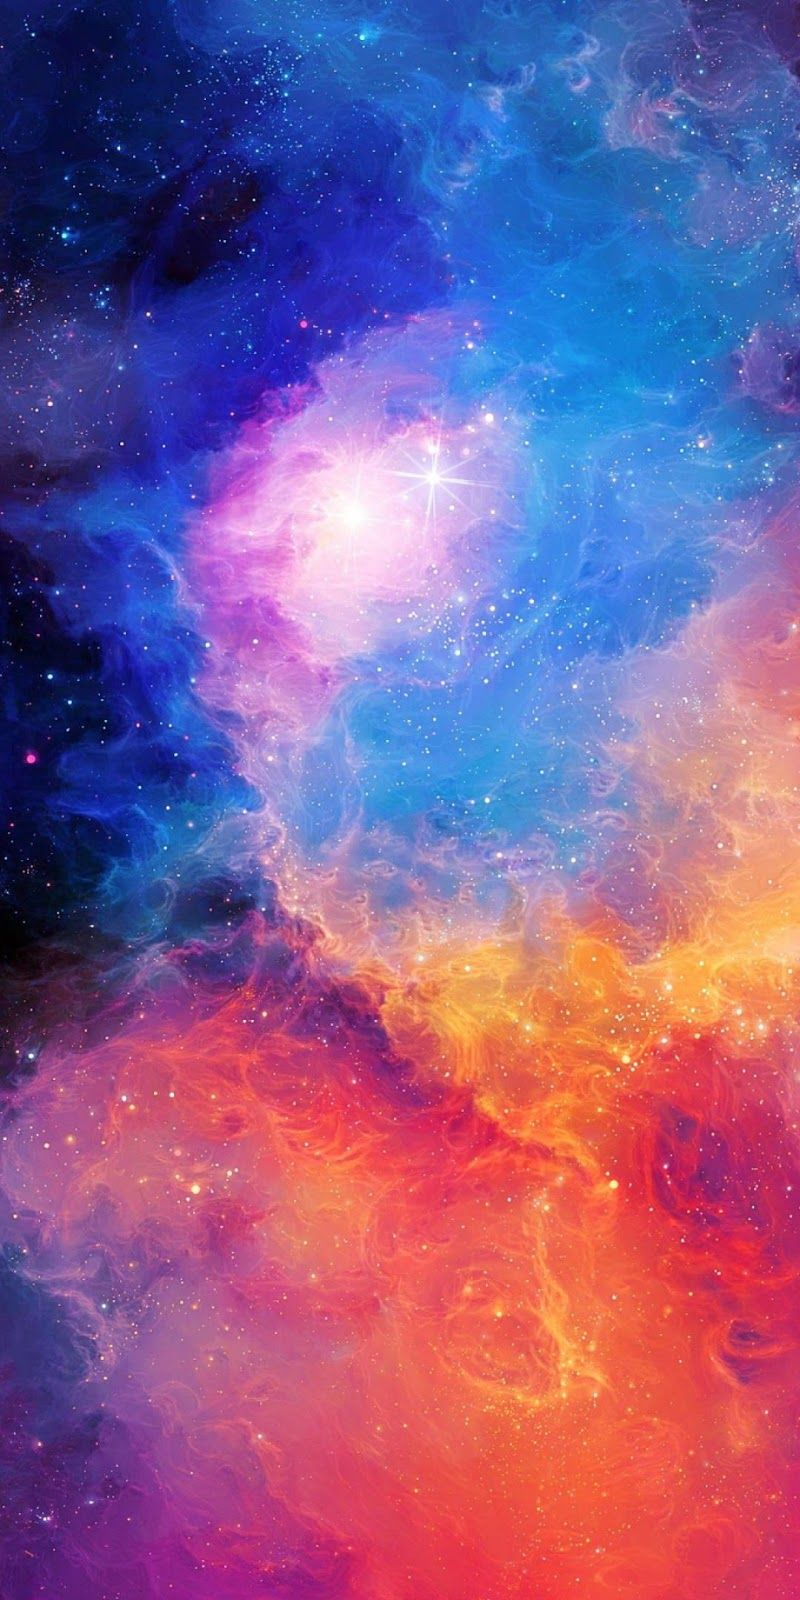 Colorful Space Wallpaper Iphone Android Background Followme Colorful Wallpaper Samsung Wallpaper Iphone Wallpaper Vintage